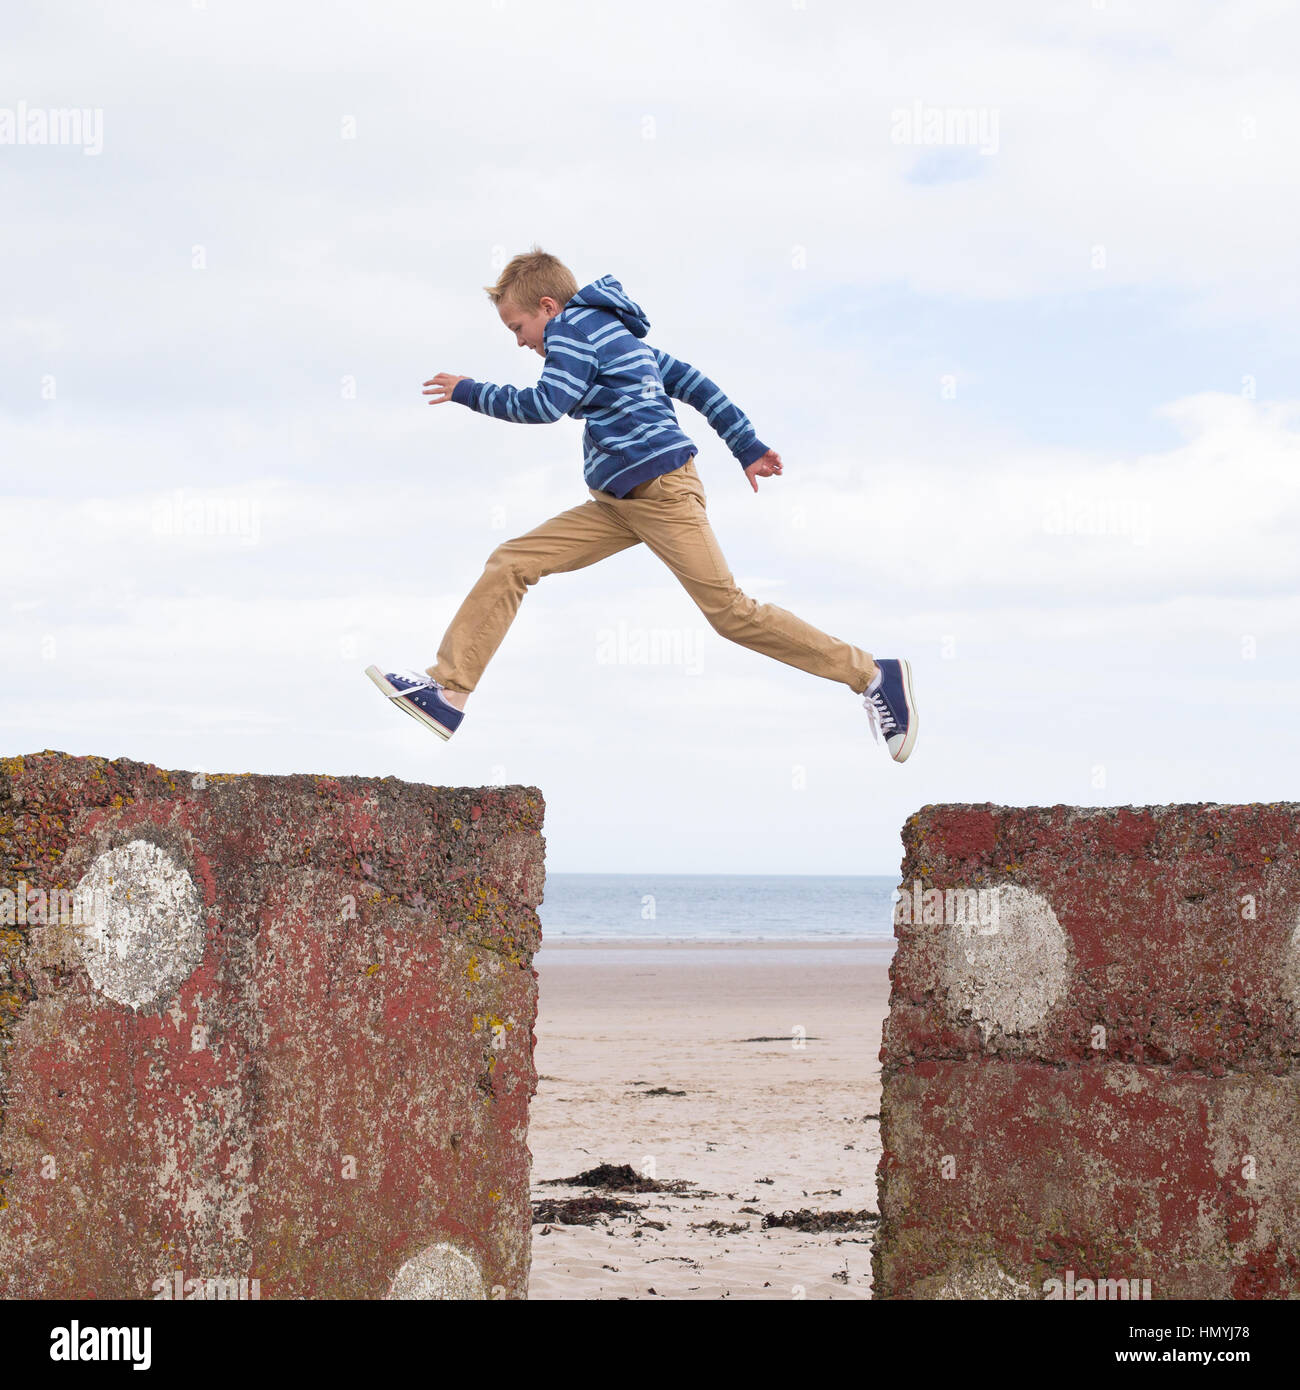 Energetic teenage boy jumping from one rock to another with the beach in the background. - Stock Image